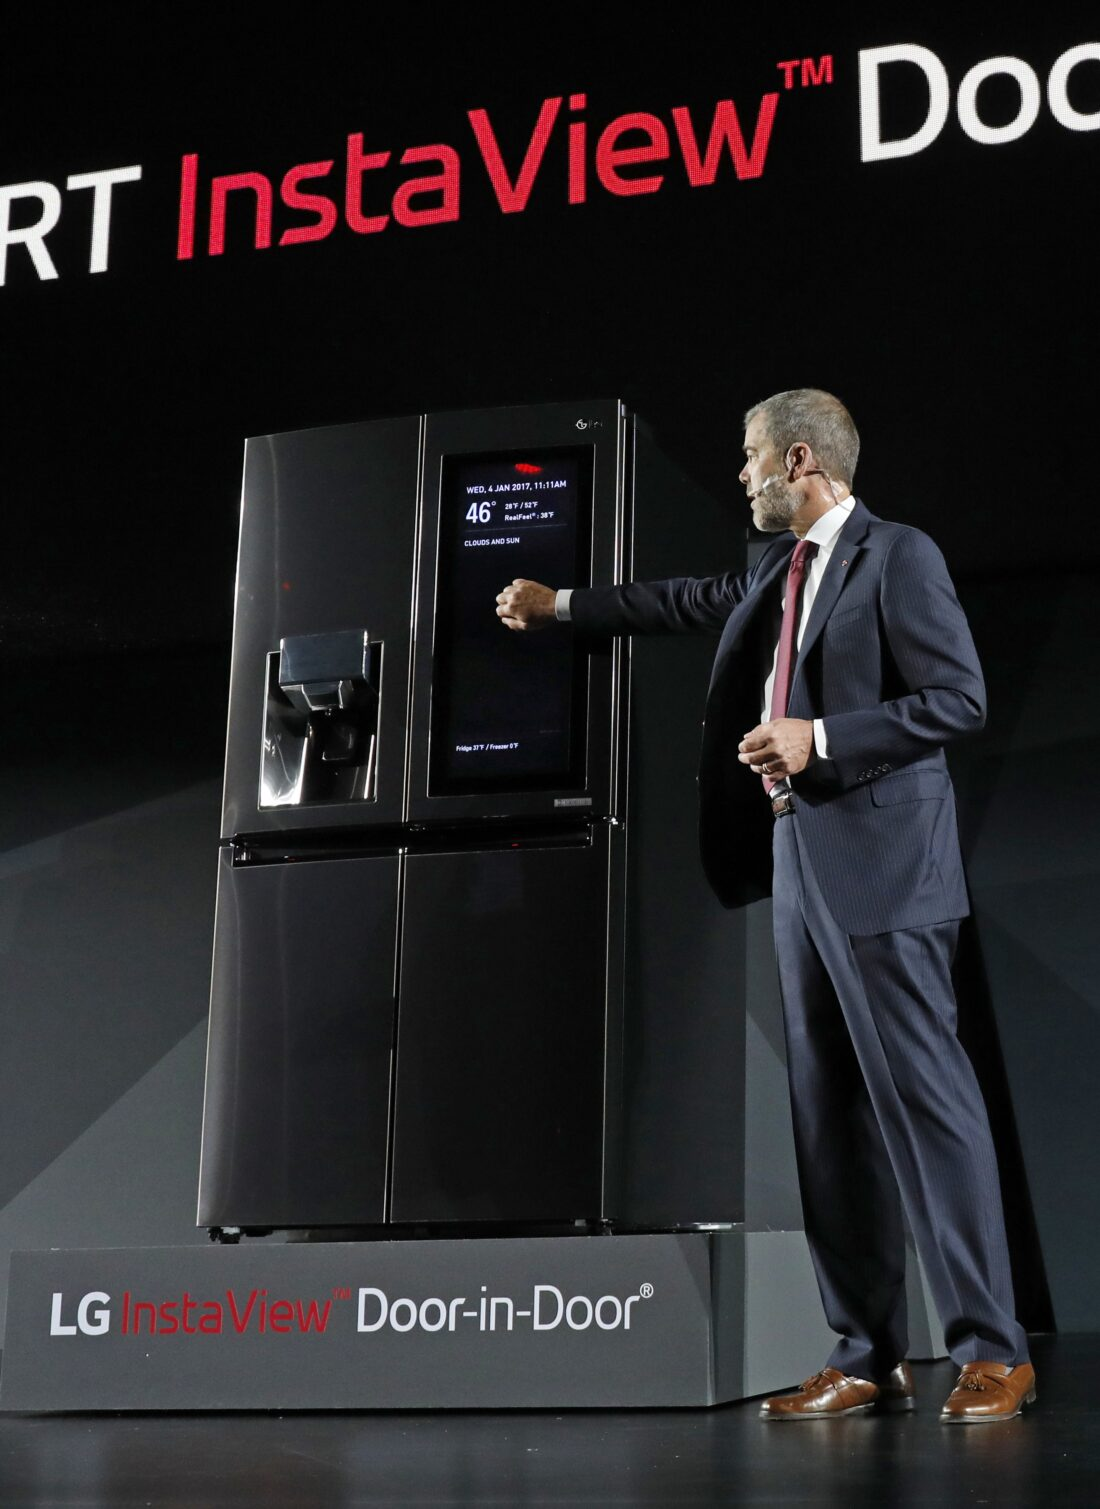 David VanderWaal, Senior Vice President, Marketing, LG Electronics demonstrates the InstaView feature of LG's InstaView Door-in-Door refrigerator at its CES 2017 Press Conference.